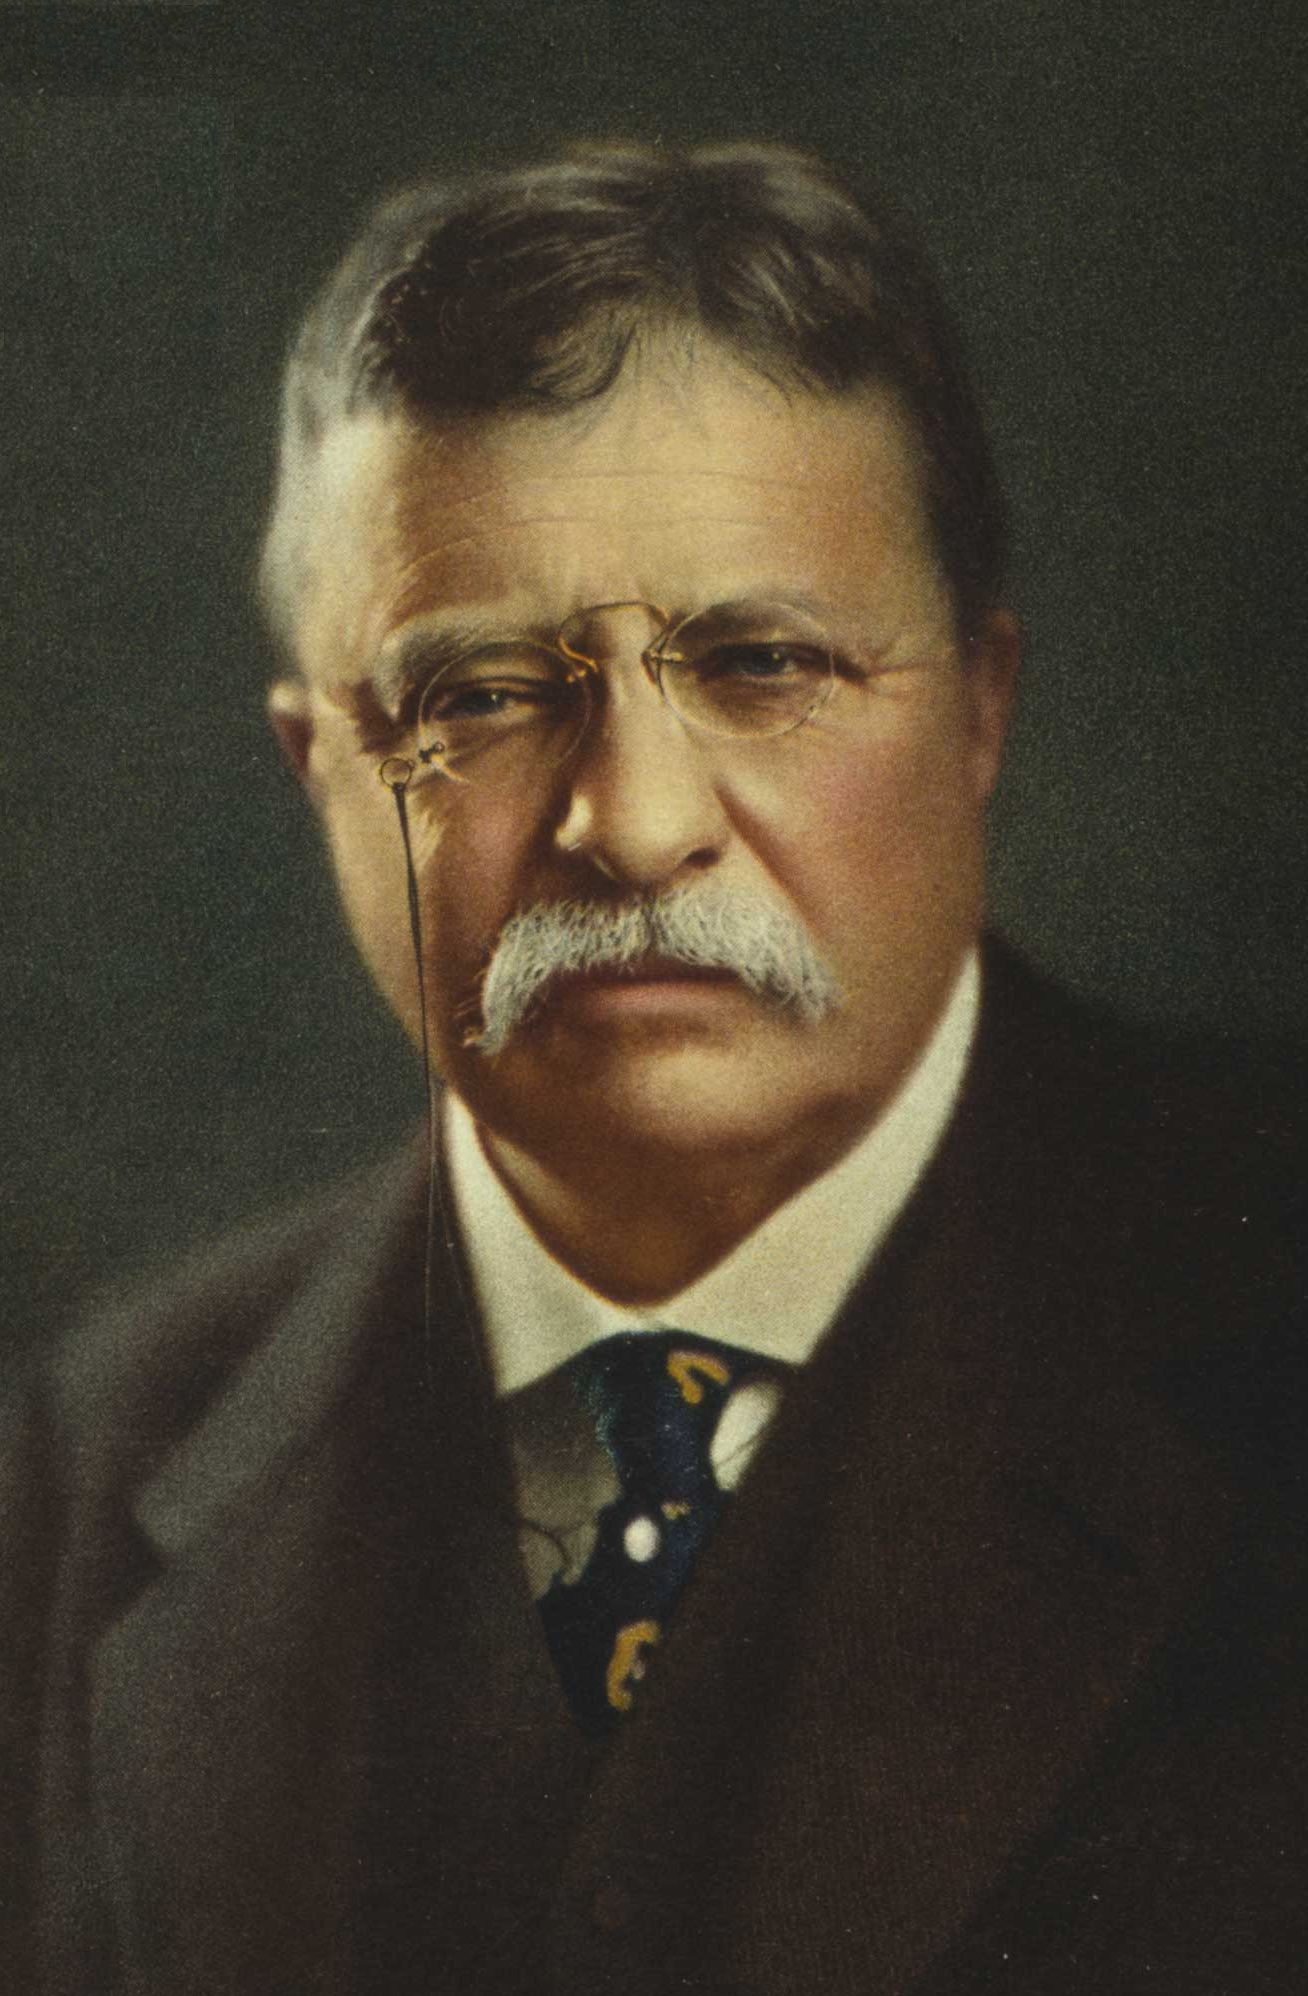 a review of the presidency of theodore roosevelt 2018-06-14  theodore roosevelt: theodore roosevelt, the 26th president of the united states and a writer, naturalist, and soldier.